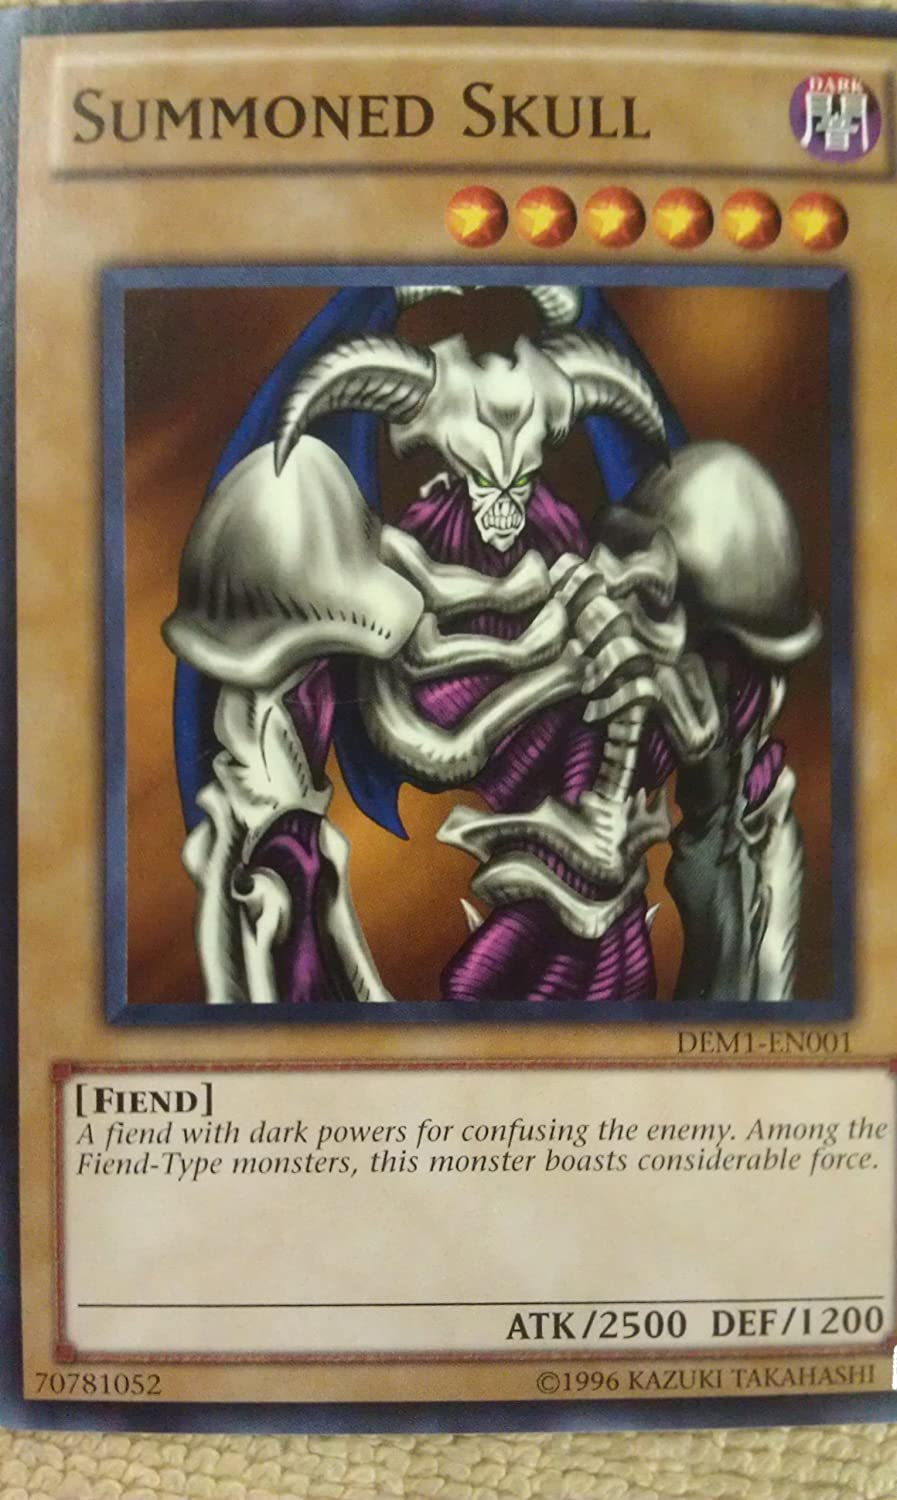 Details about  /3x YuGiOh New Unlimited Common Summoned Skull DEM1-EN001 from Demo Pack Unused